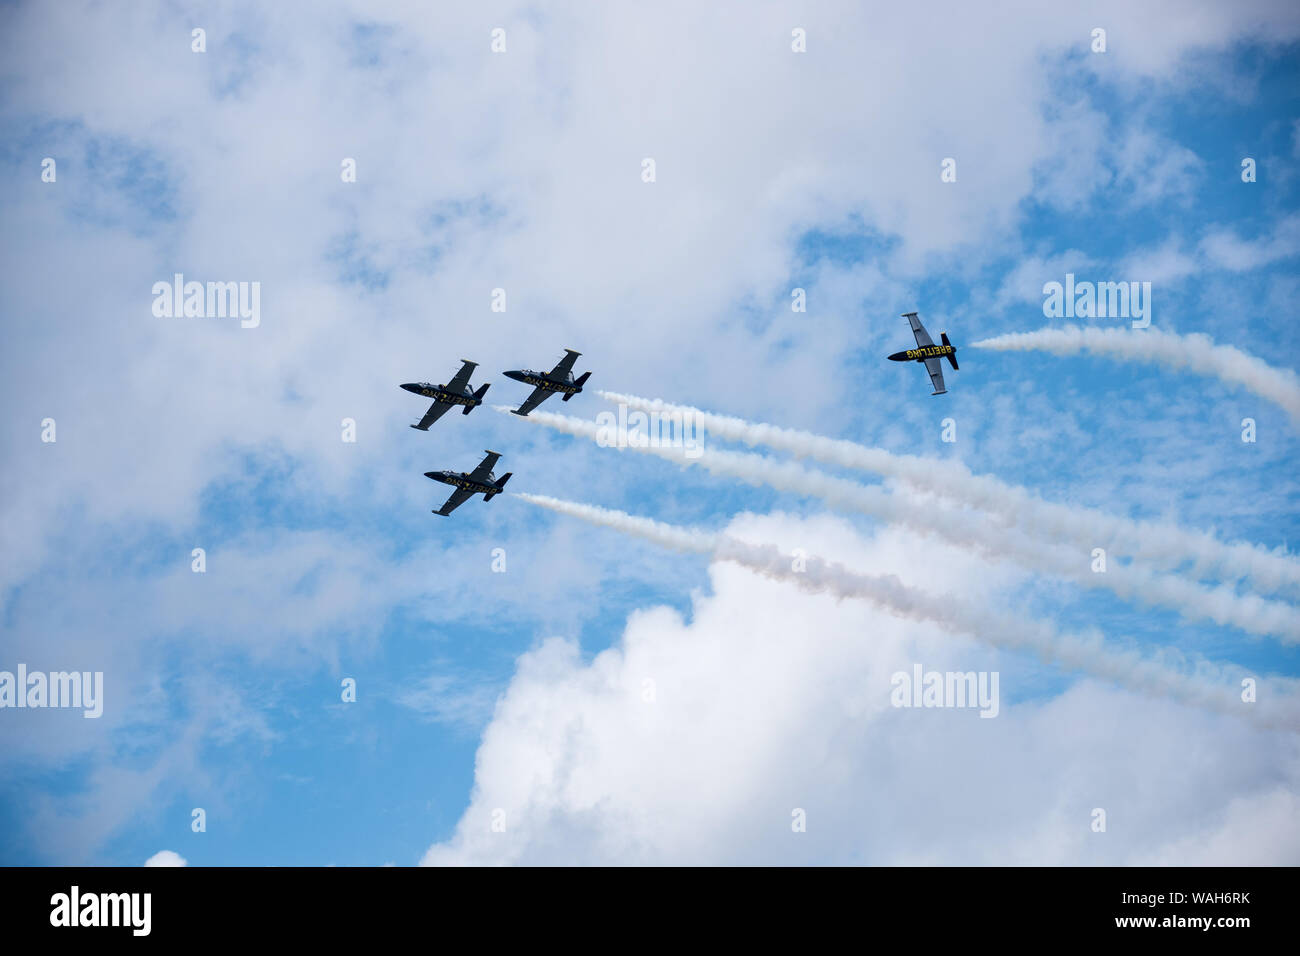 Breitling Jet Team during dynamic manoeuvre at airshow Stock Photo